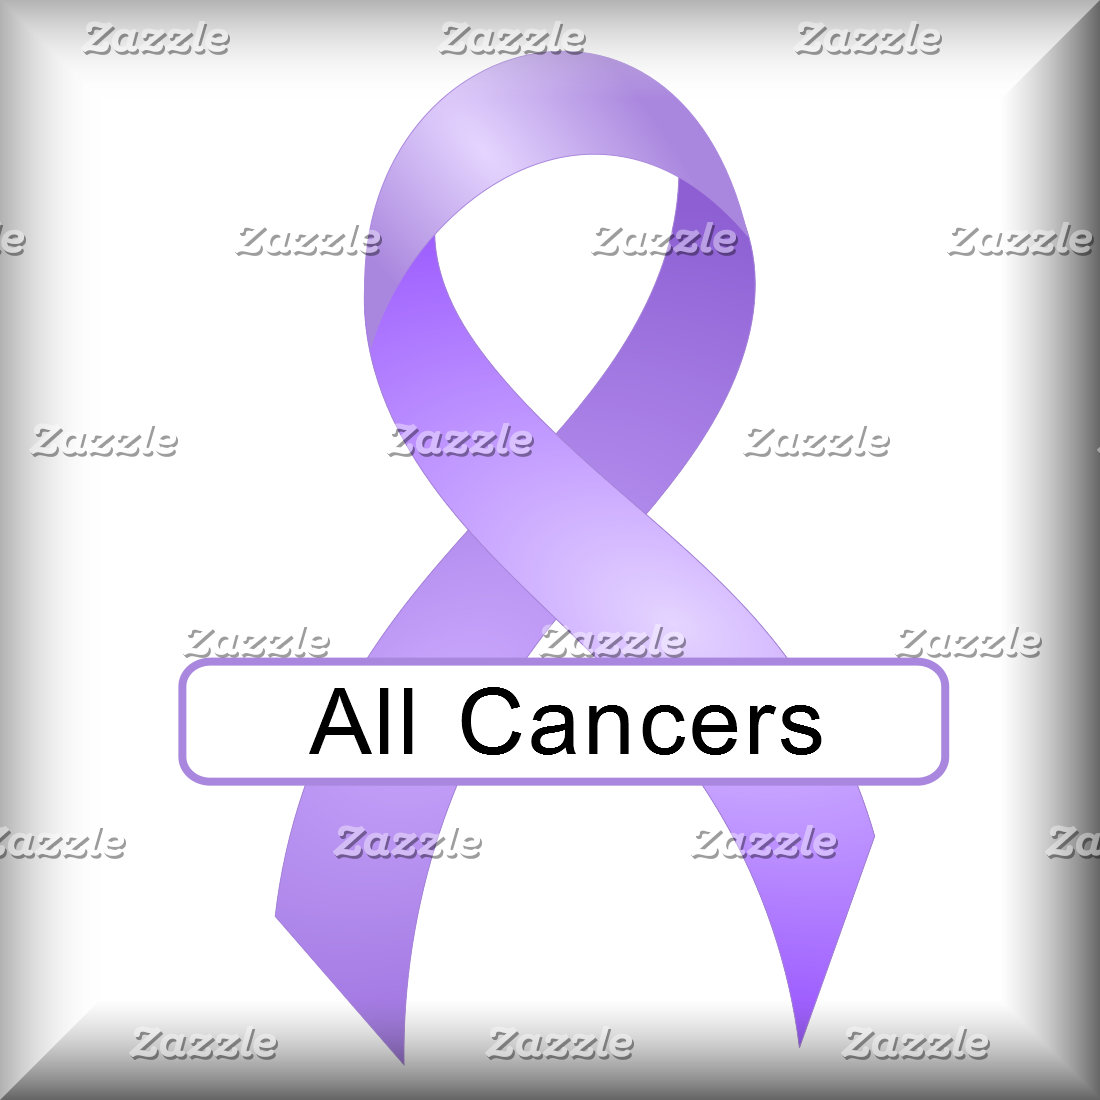 All Cancer